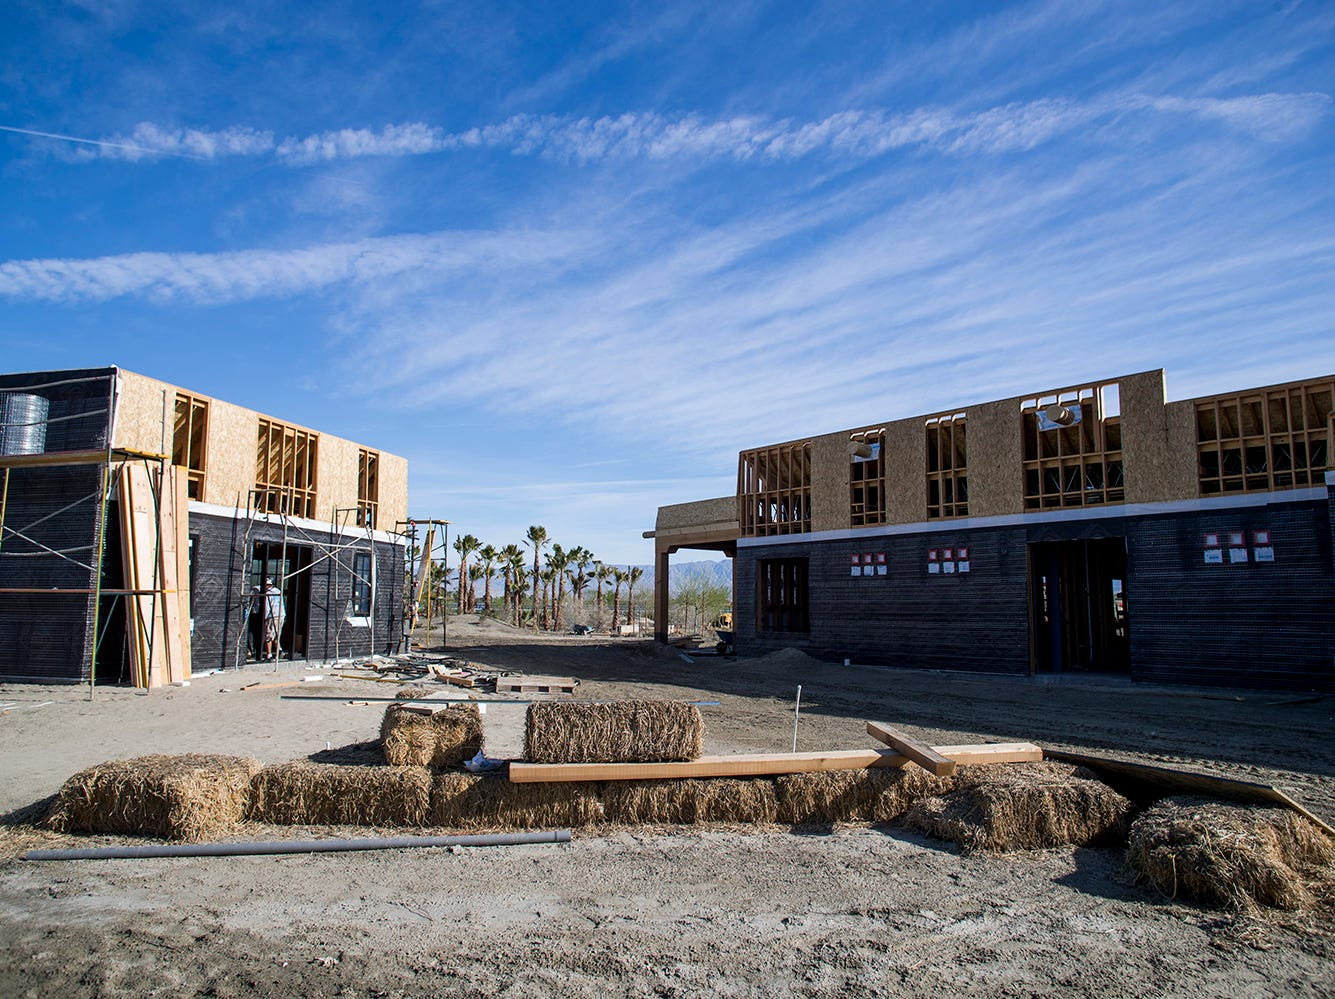 The Augustine Band is months away from completing construction on an  educational facility and farmers market where the public will learn about Native American culture and environmental sustainability.